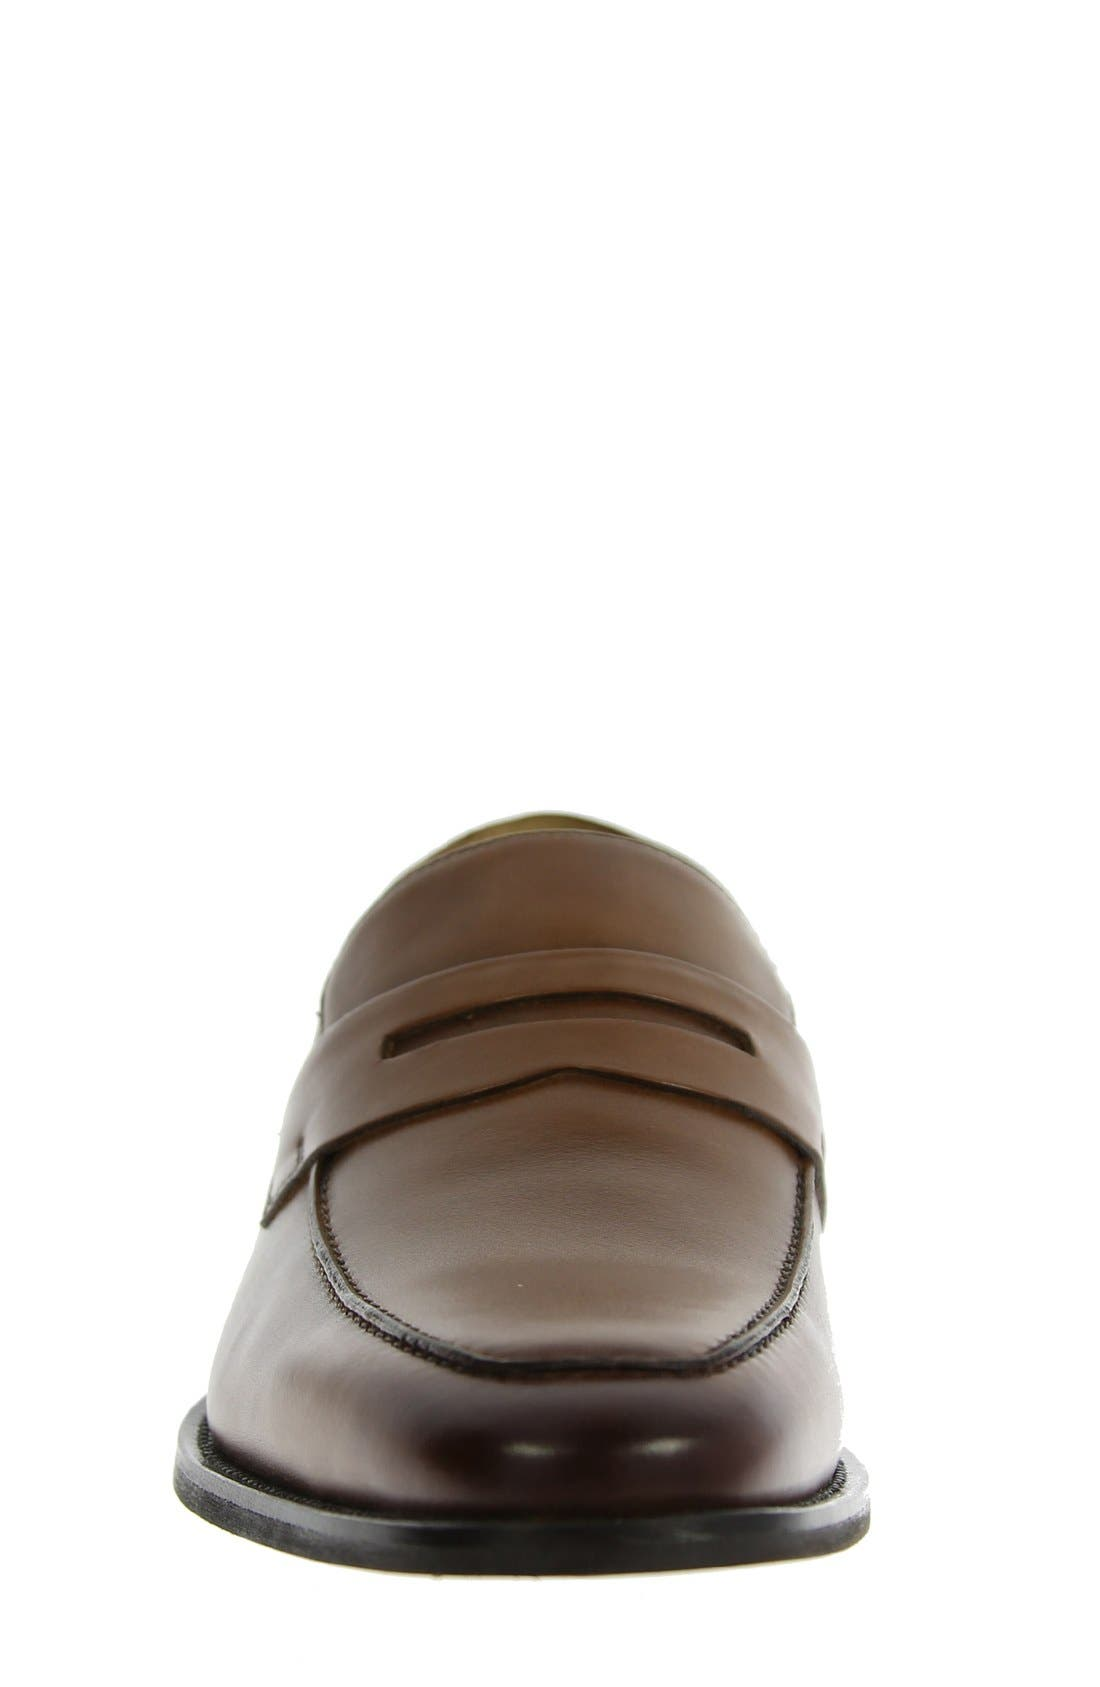 'Sabato' Penny Loafer,                             Alternate thumbnail 10, color,